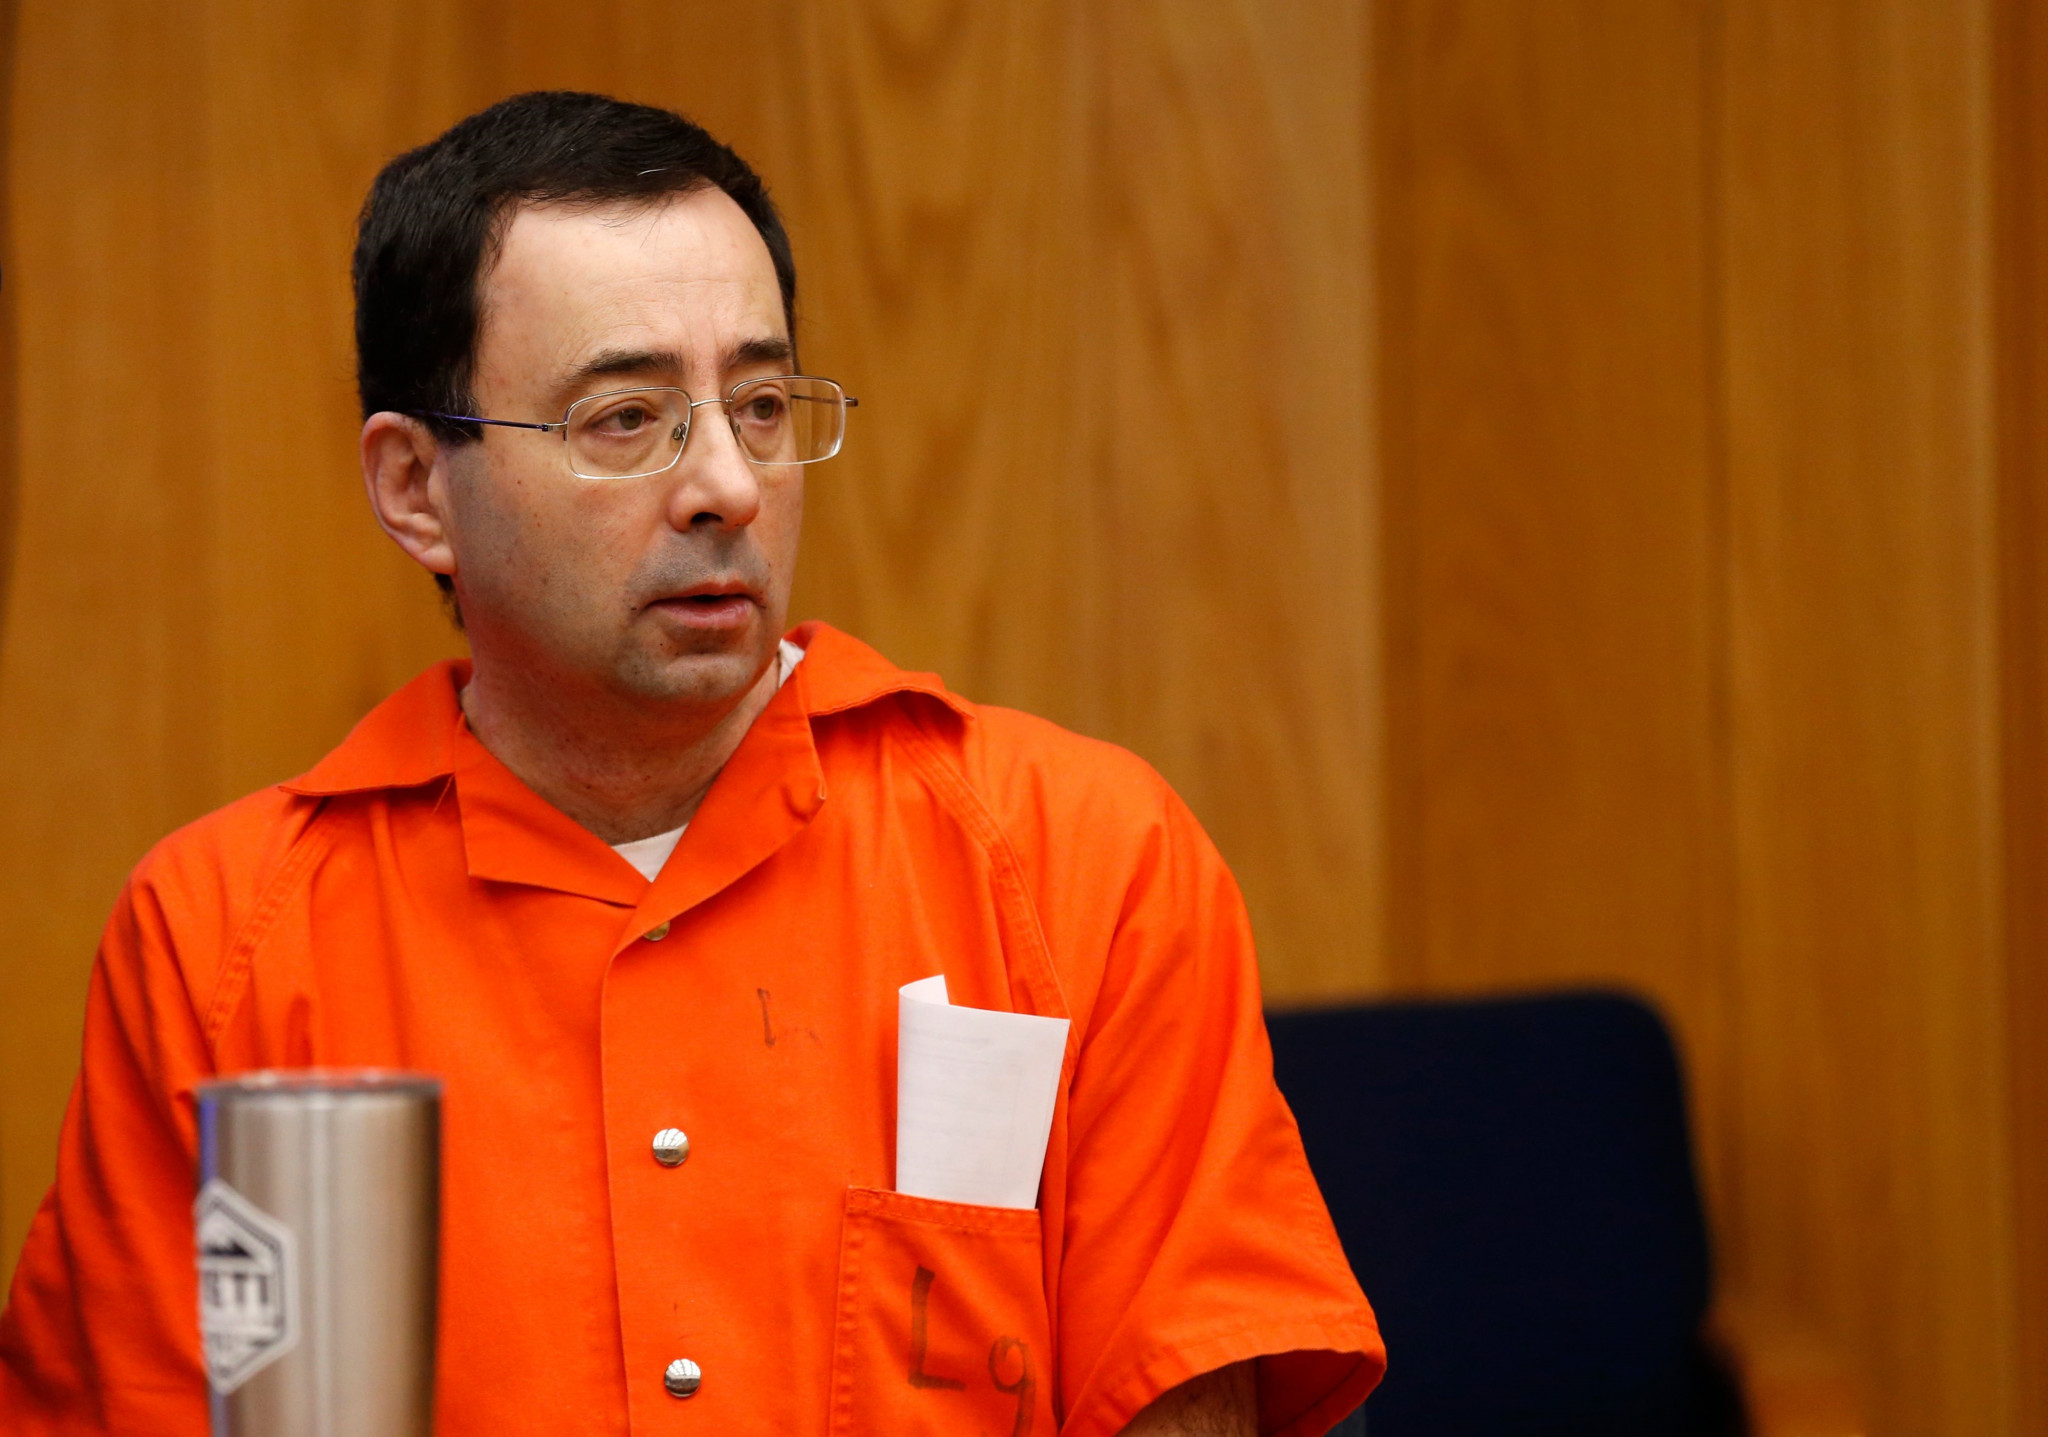 USA Gymnastics are still attempting to recover from the scandal involving former team doctor Larry Nassar ©Getty Images